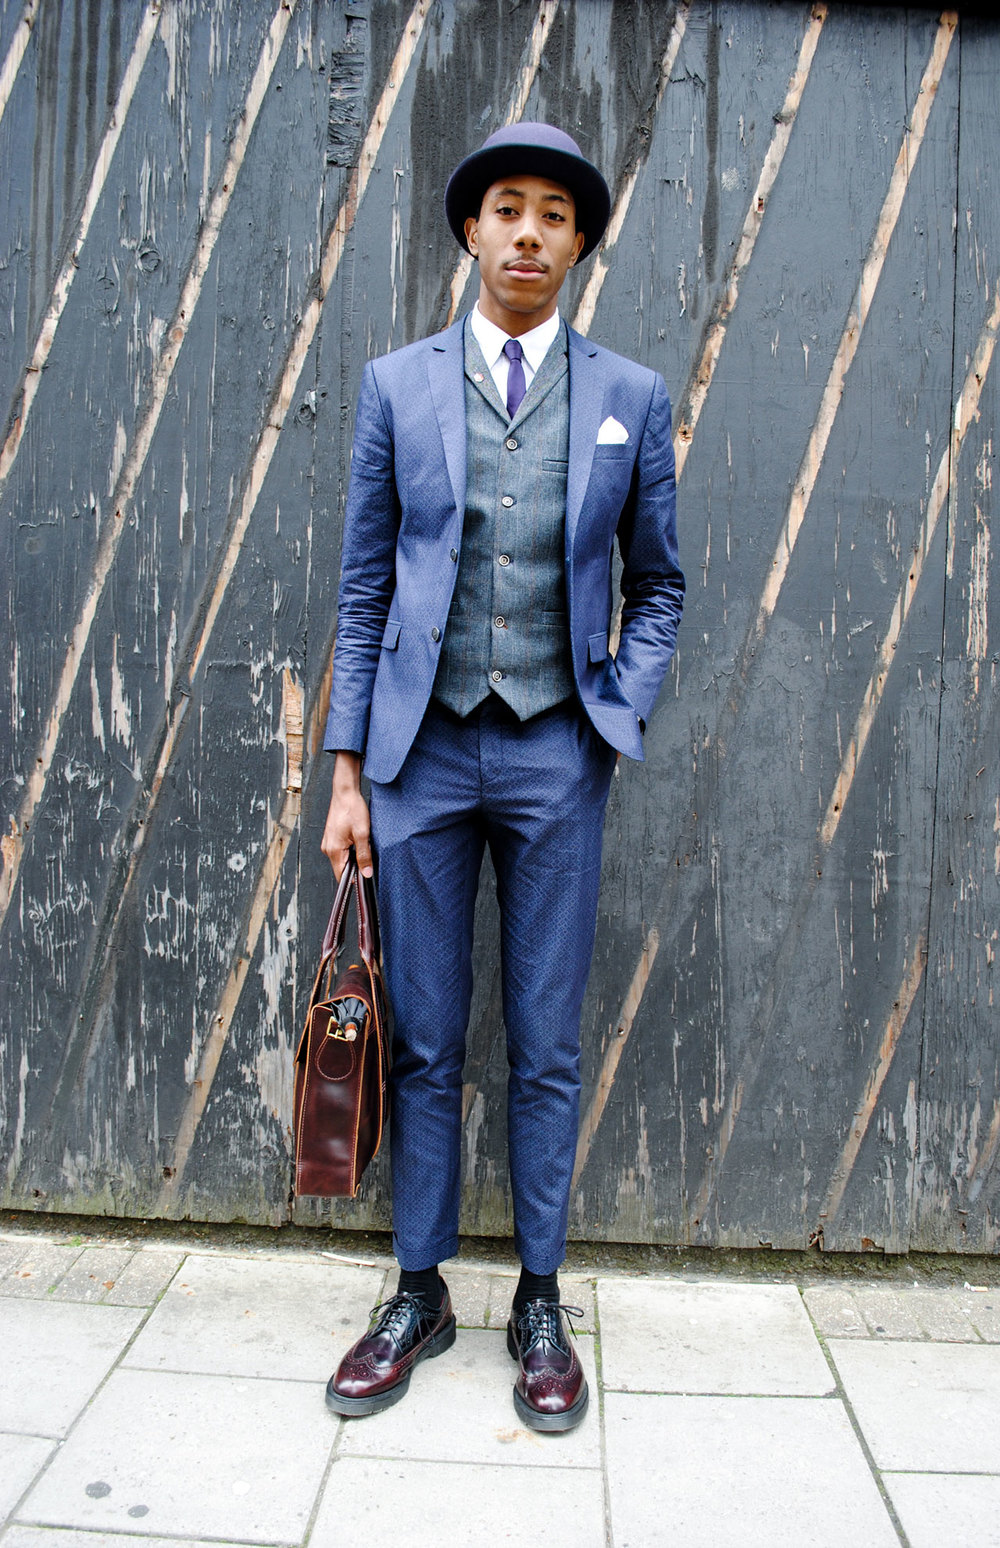 sartorial-suits-street-style-london-collections-men-ss13-2013-_-4